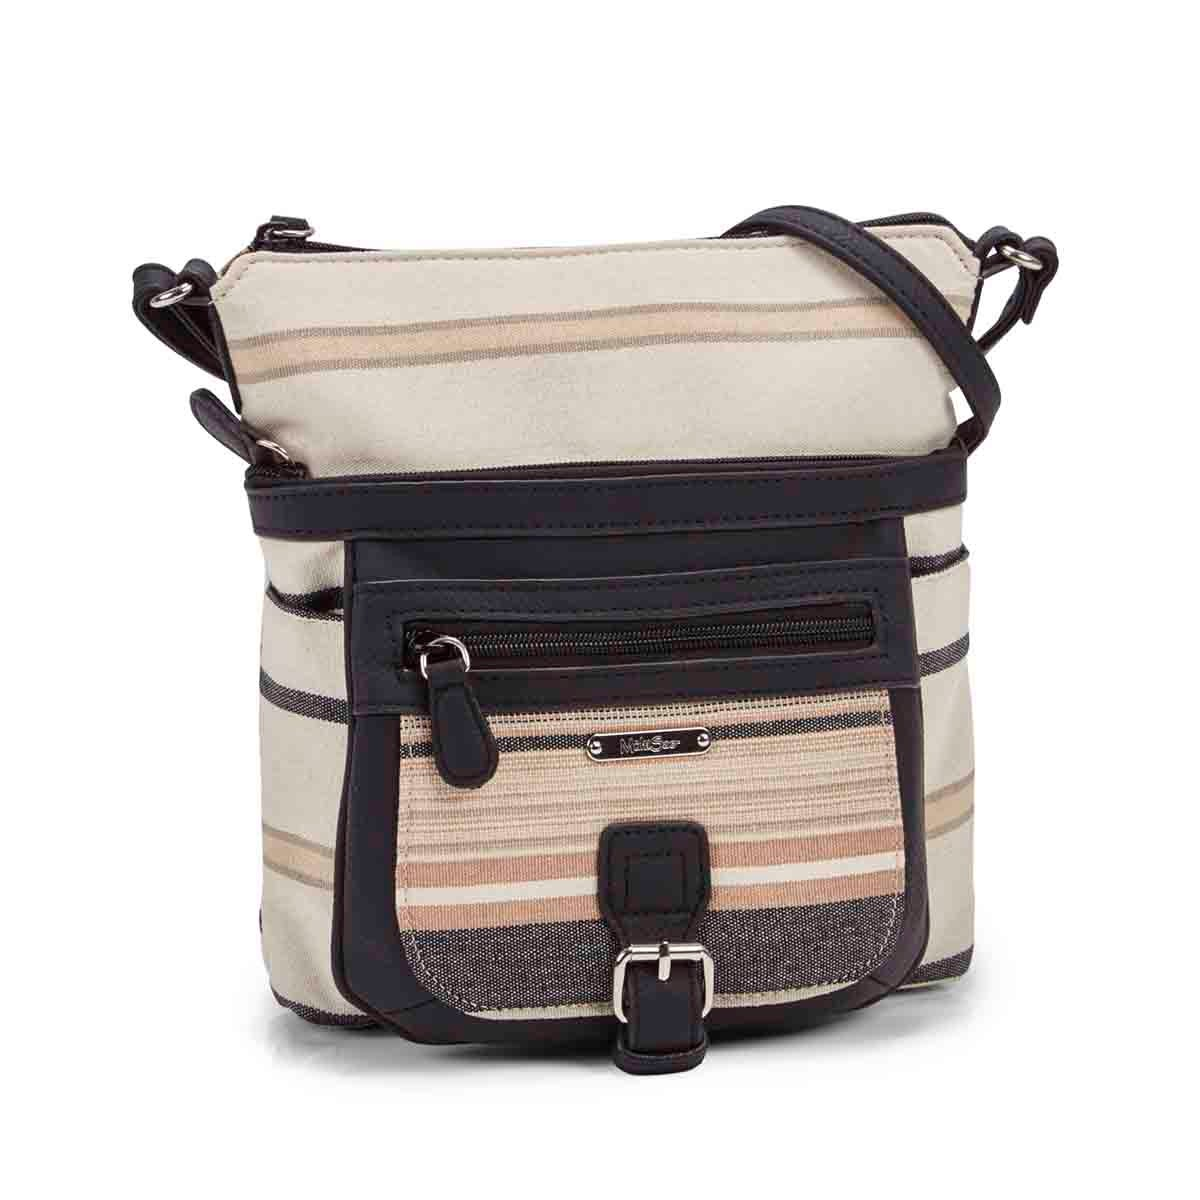 Women's mini FLARE natural/black crossbody bag